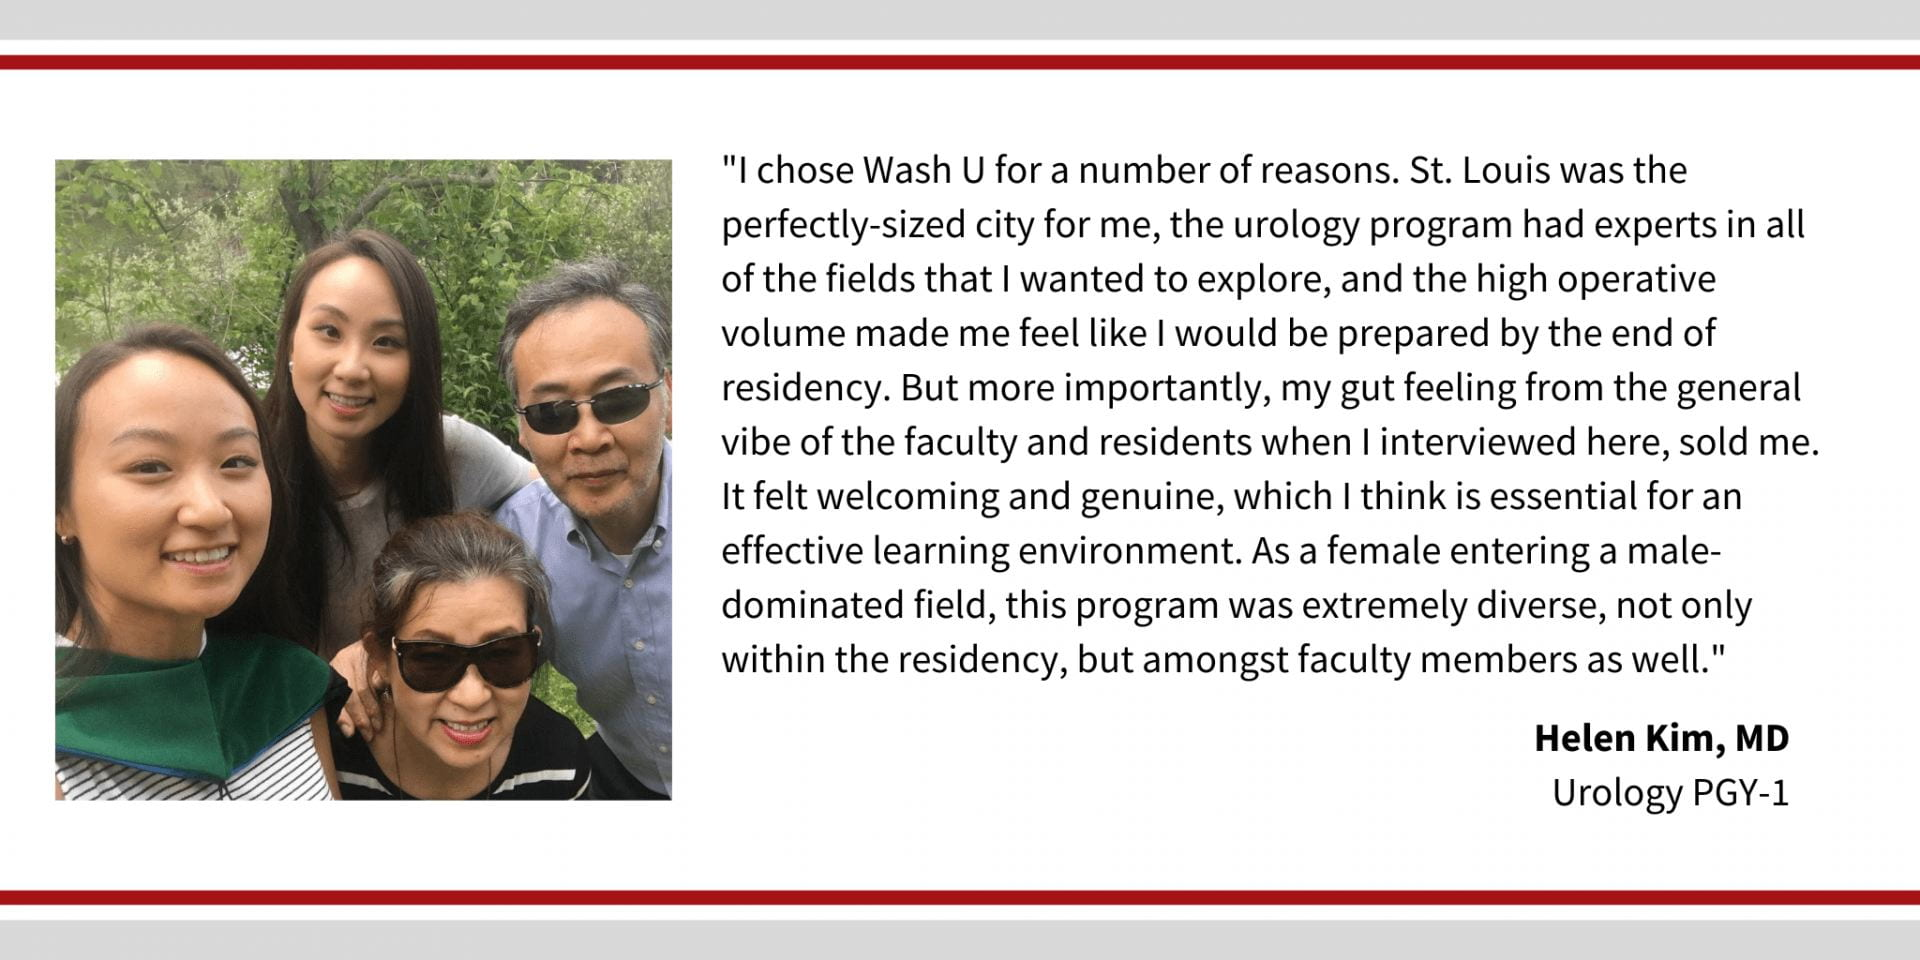 "When asked why did you choose Washington University, Helen Kim, PGY 1 Urology resident, says, ""I chose WashU for a number of reasons. St. Louis was the perfectly-sized city for me, the urology program had experts in all of the fields that I wanted to explore, and the high operative volume made me feel like I would be prepared by the end of residency. But more importantly, my gut feeling from the general vibe of the faculty and residents when I interviewed here, sold me. It felt welcoming and genuine, which I think is essential for an effective learning environment. As a female entering a male dominated field, this program was extremely diverse, not only within the residency, but amongst faculty members as well."""